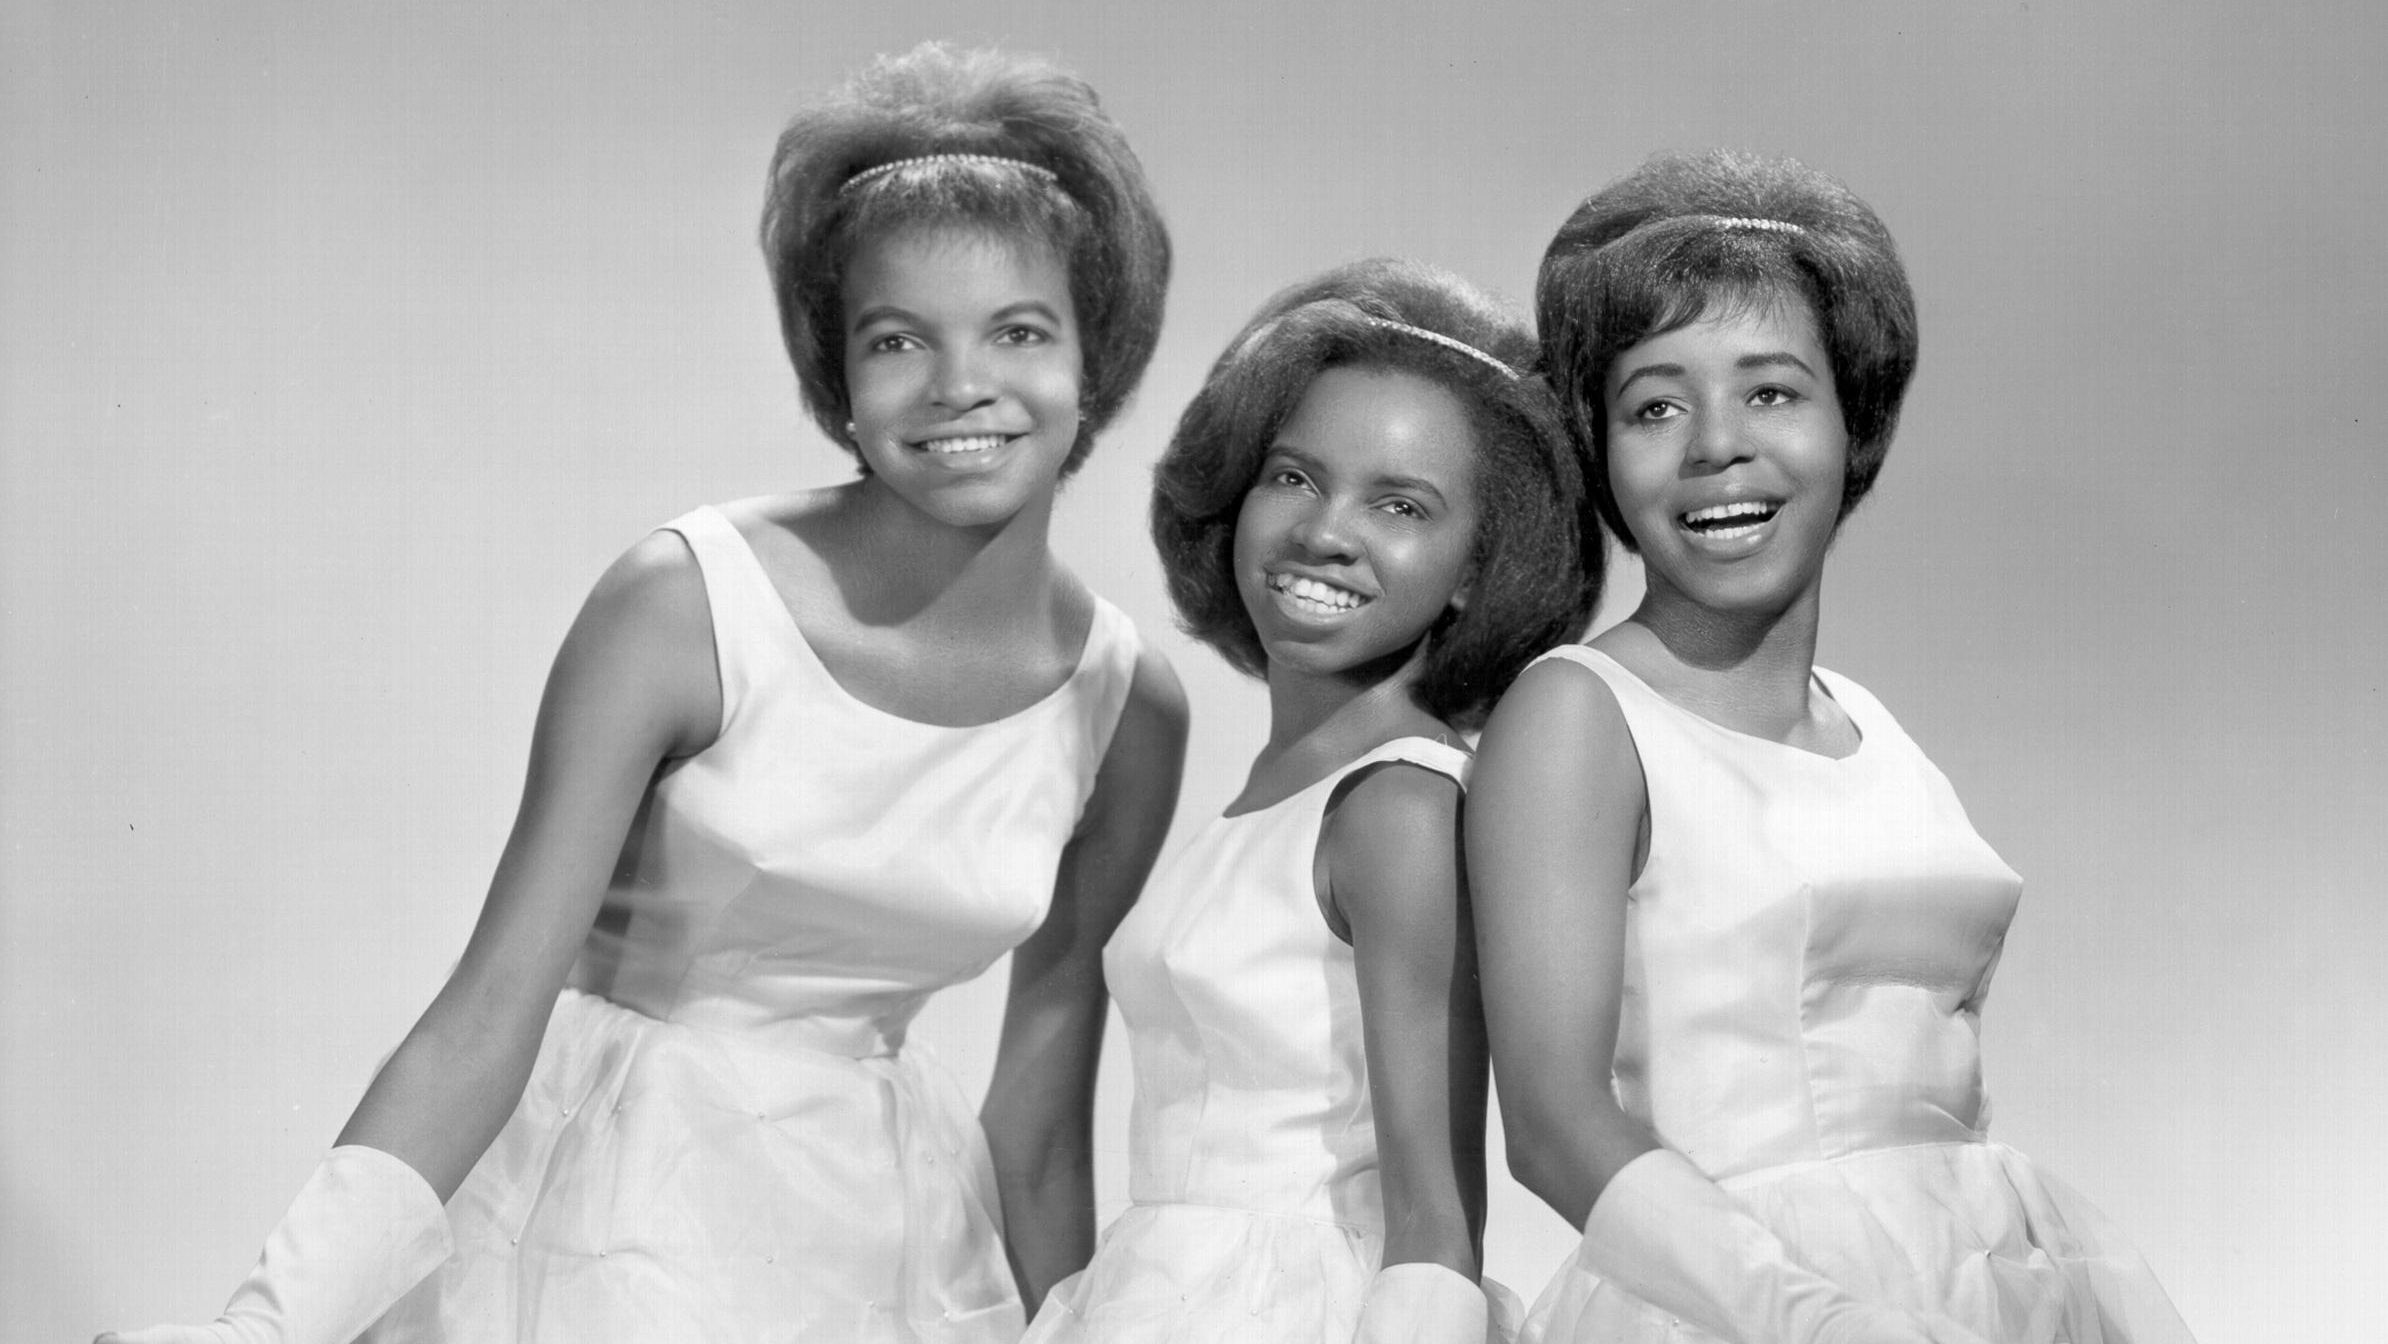 ChartTopping 'Chapel Of Love' Turns 50 Girl group